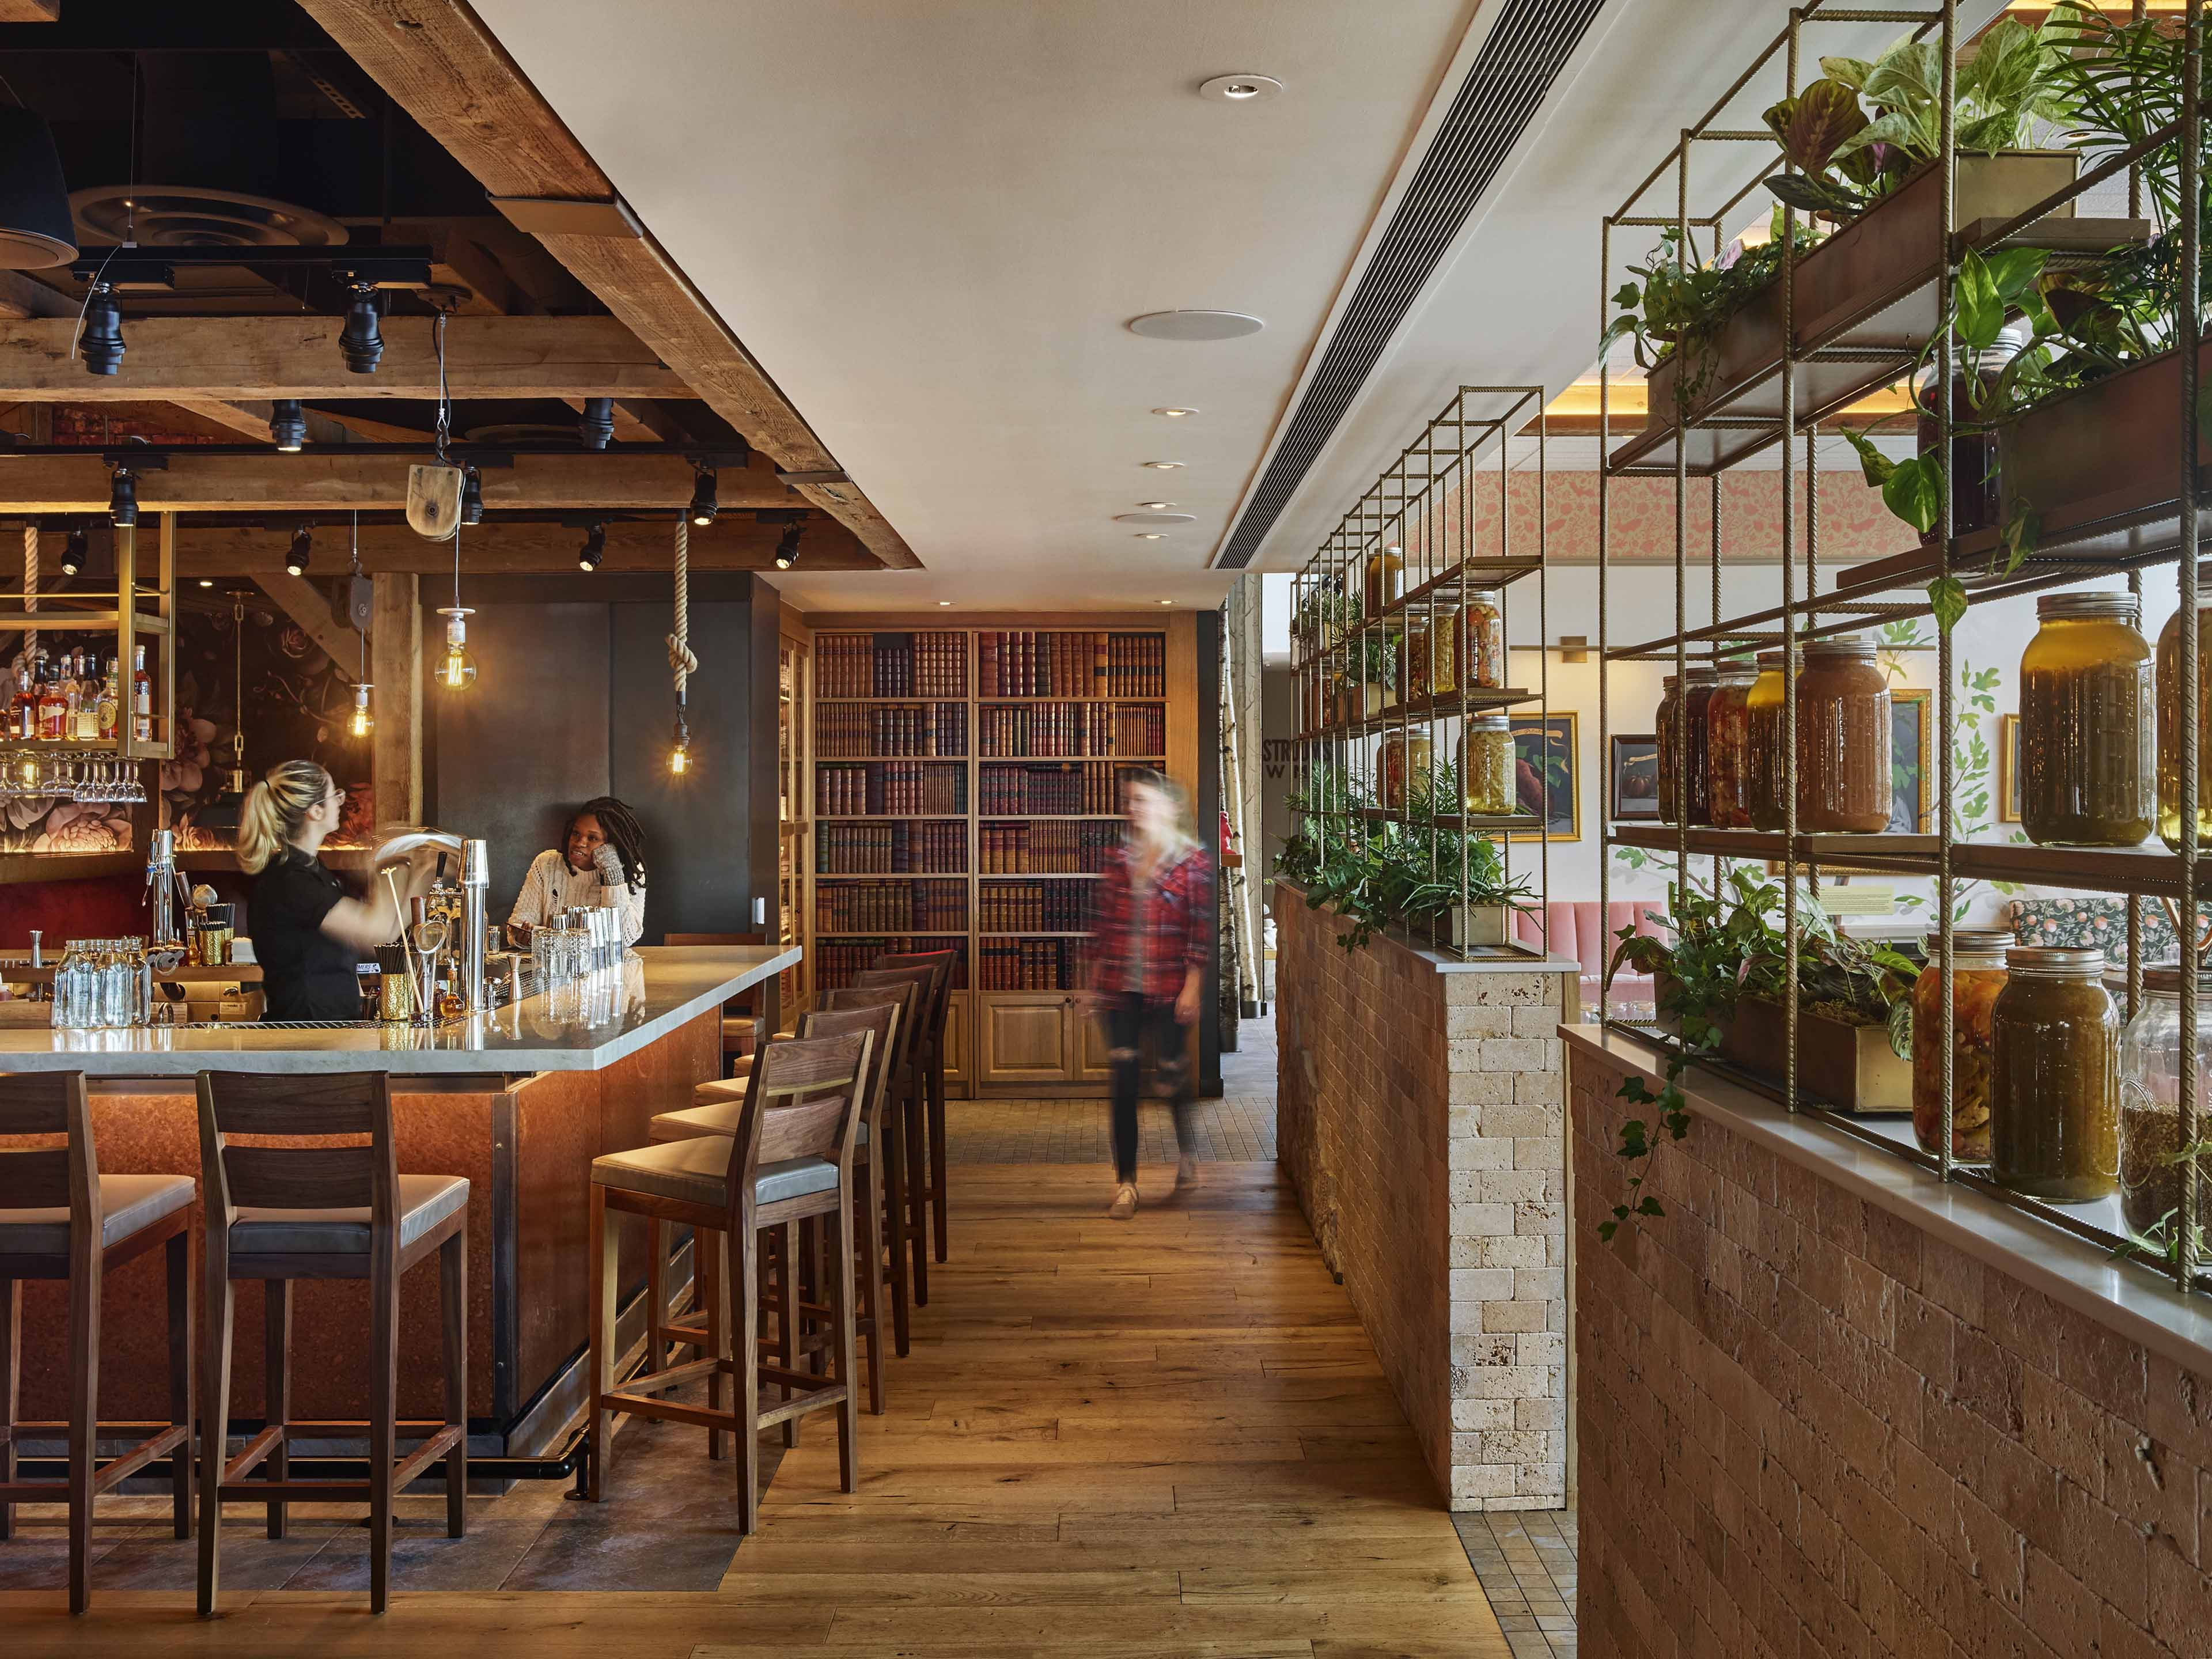 farmers restaurant Farmer j is situated on king william street in the office-dense area of monument it is the second branch of the restaurant to open in the capital, joining an existing site in leadenhall.